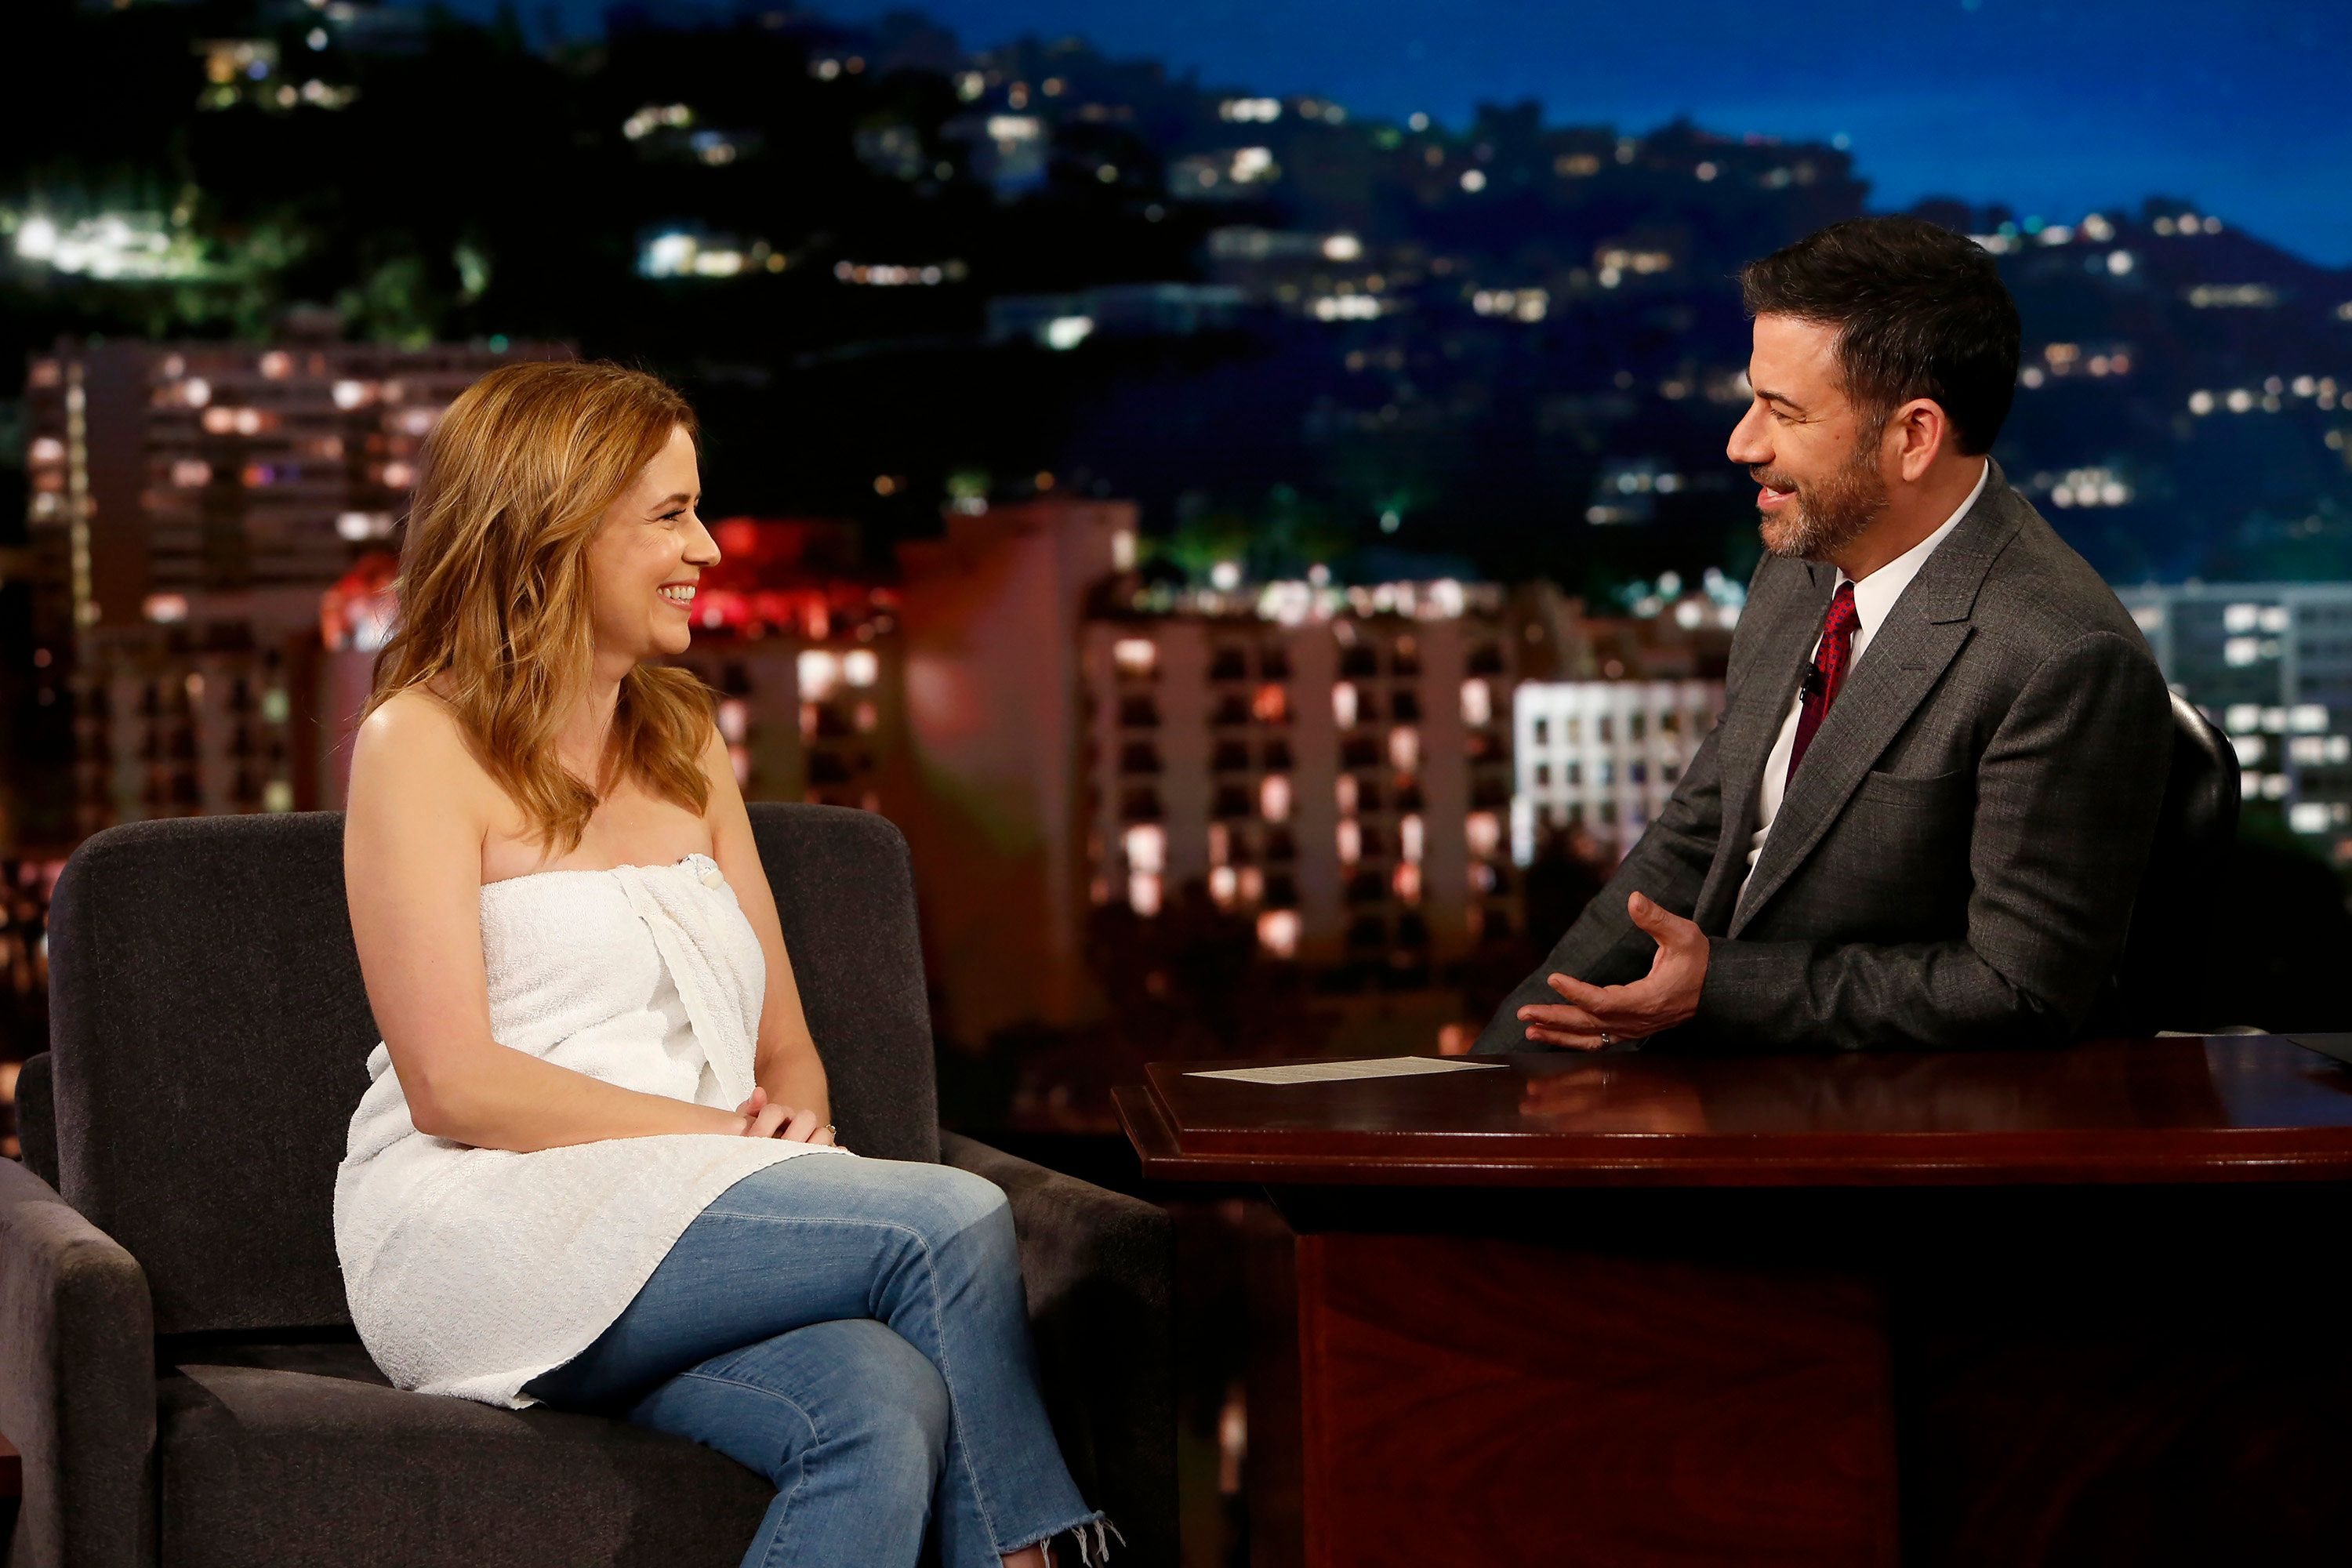 Jenna Fischer Wore A Towel On 'Jimmy Kimmel' After A Wardrobe Malfunction